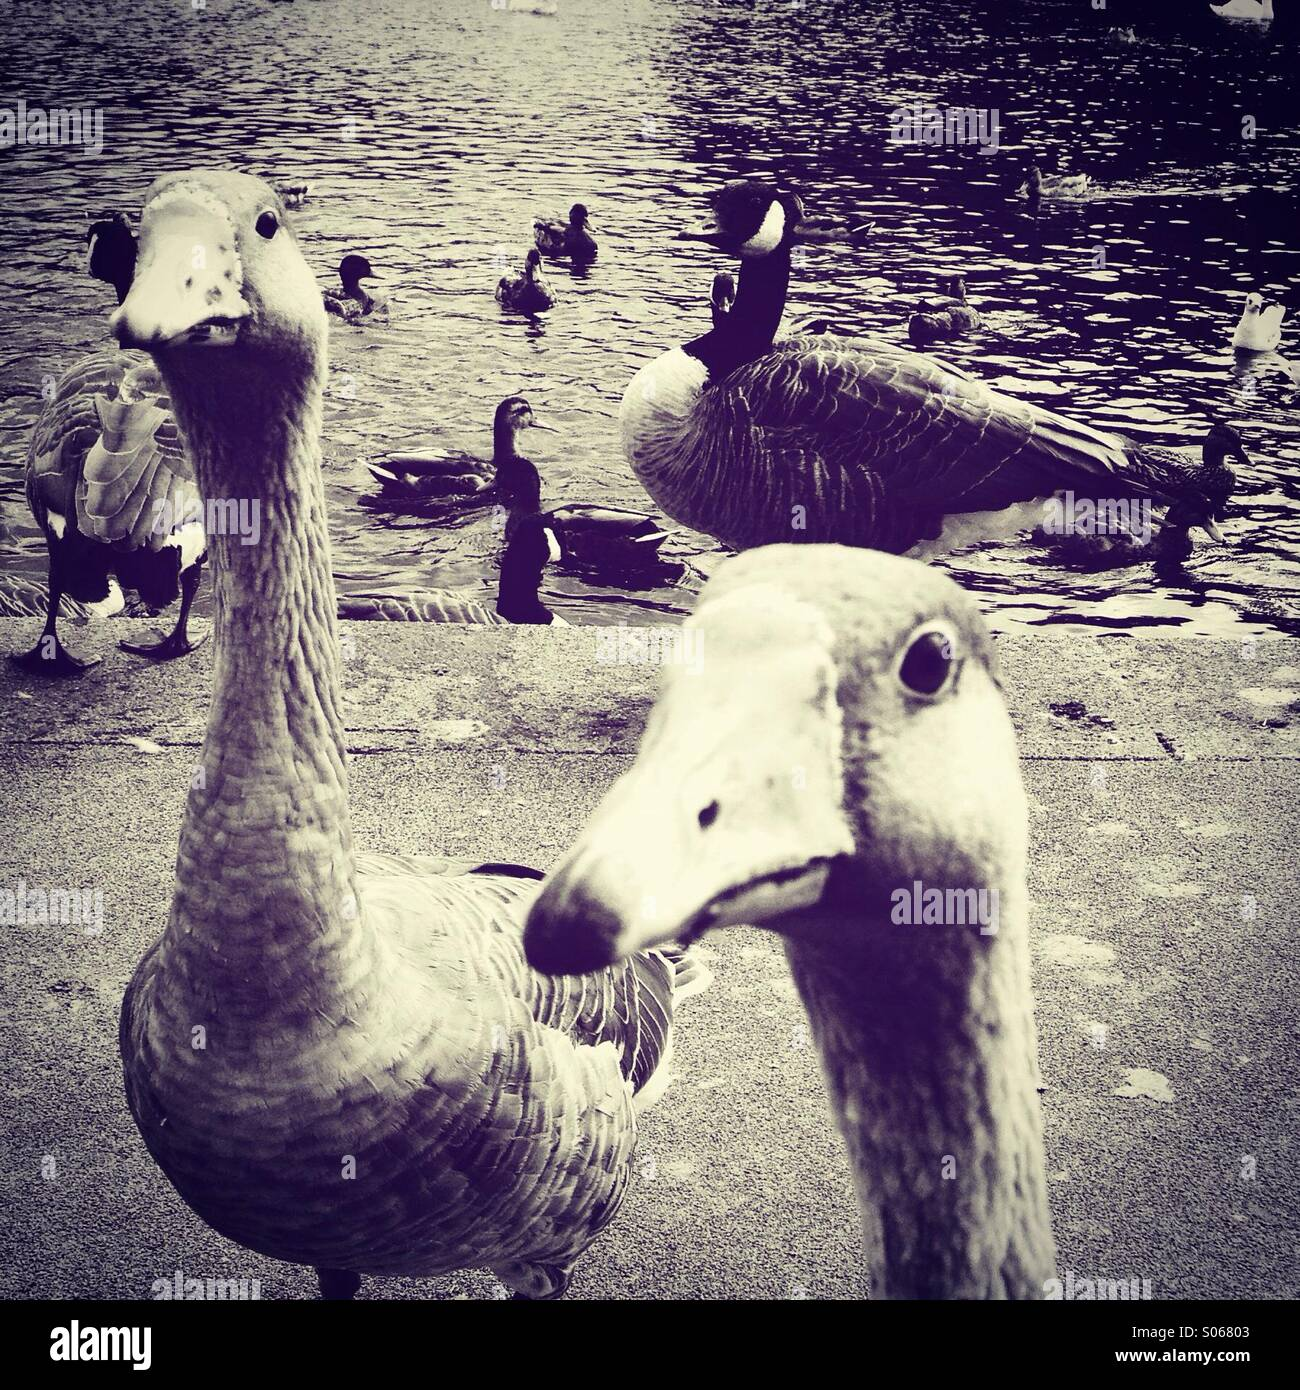 Feeding the ducks and geese - Stock Image